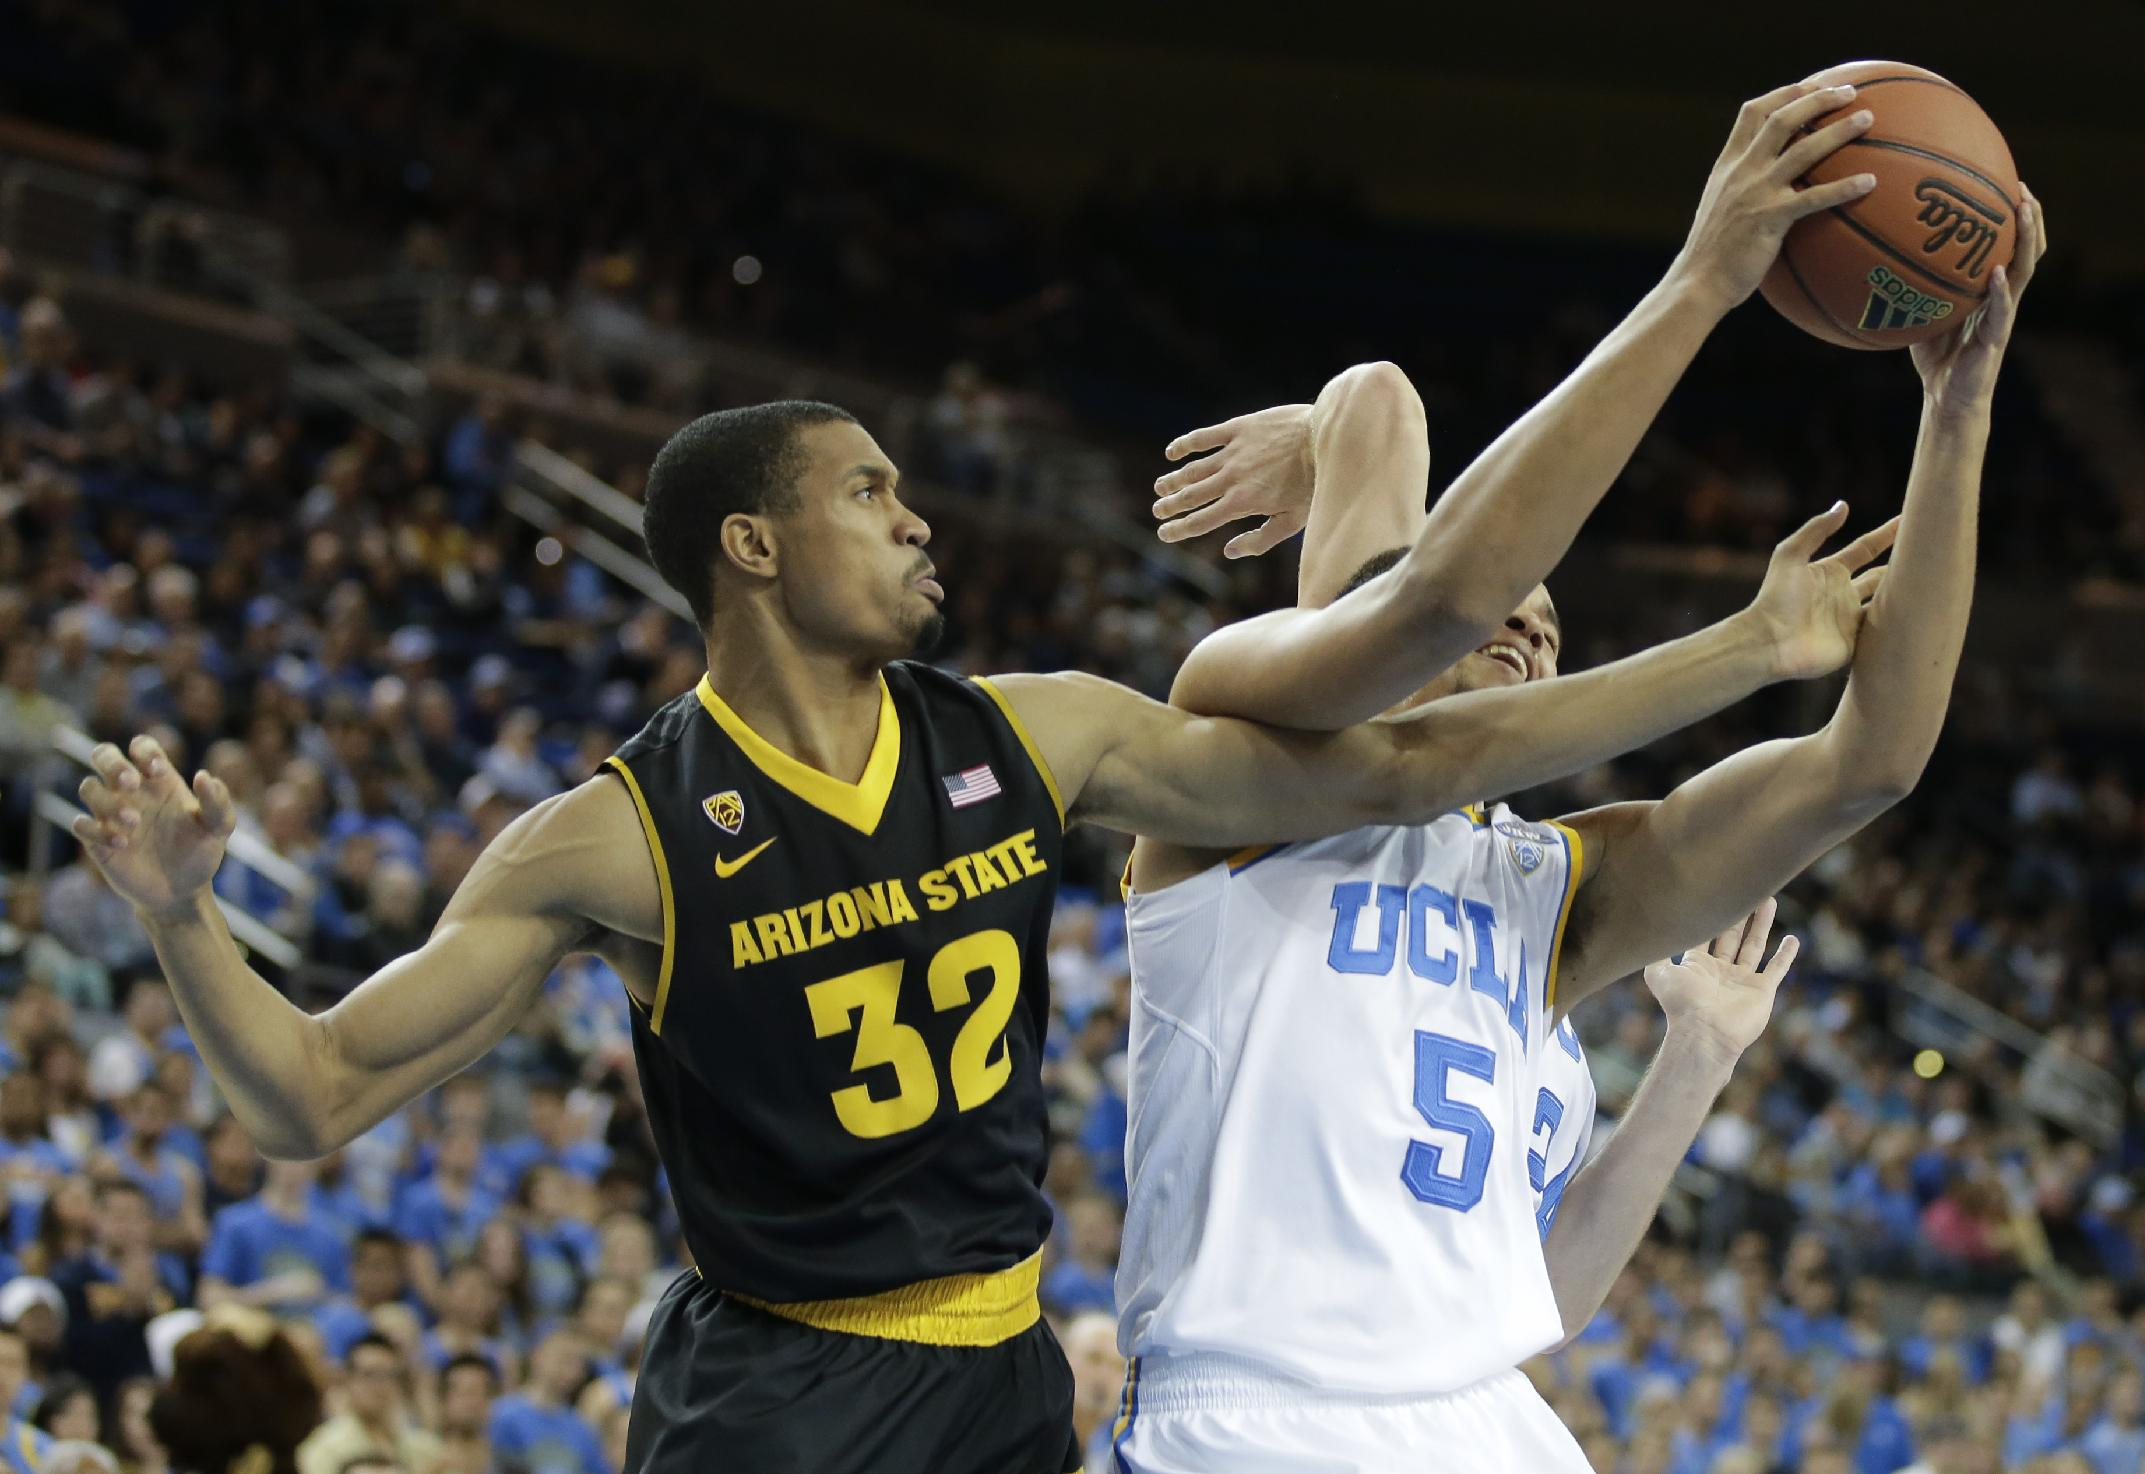 UCLA guard Kyle Anderson, right, pulls a rebound away from Arizona State forward Brandan Kearney during the first half of an NCAA college basketball game in Los Angeles, Sunday, Jan. 12, 2014